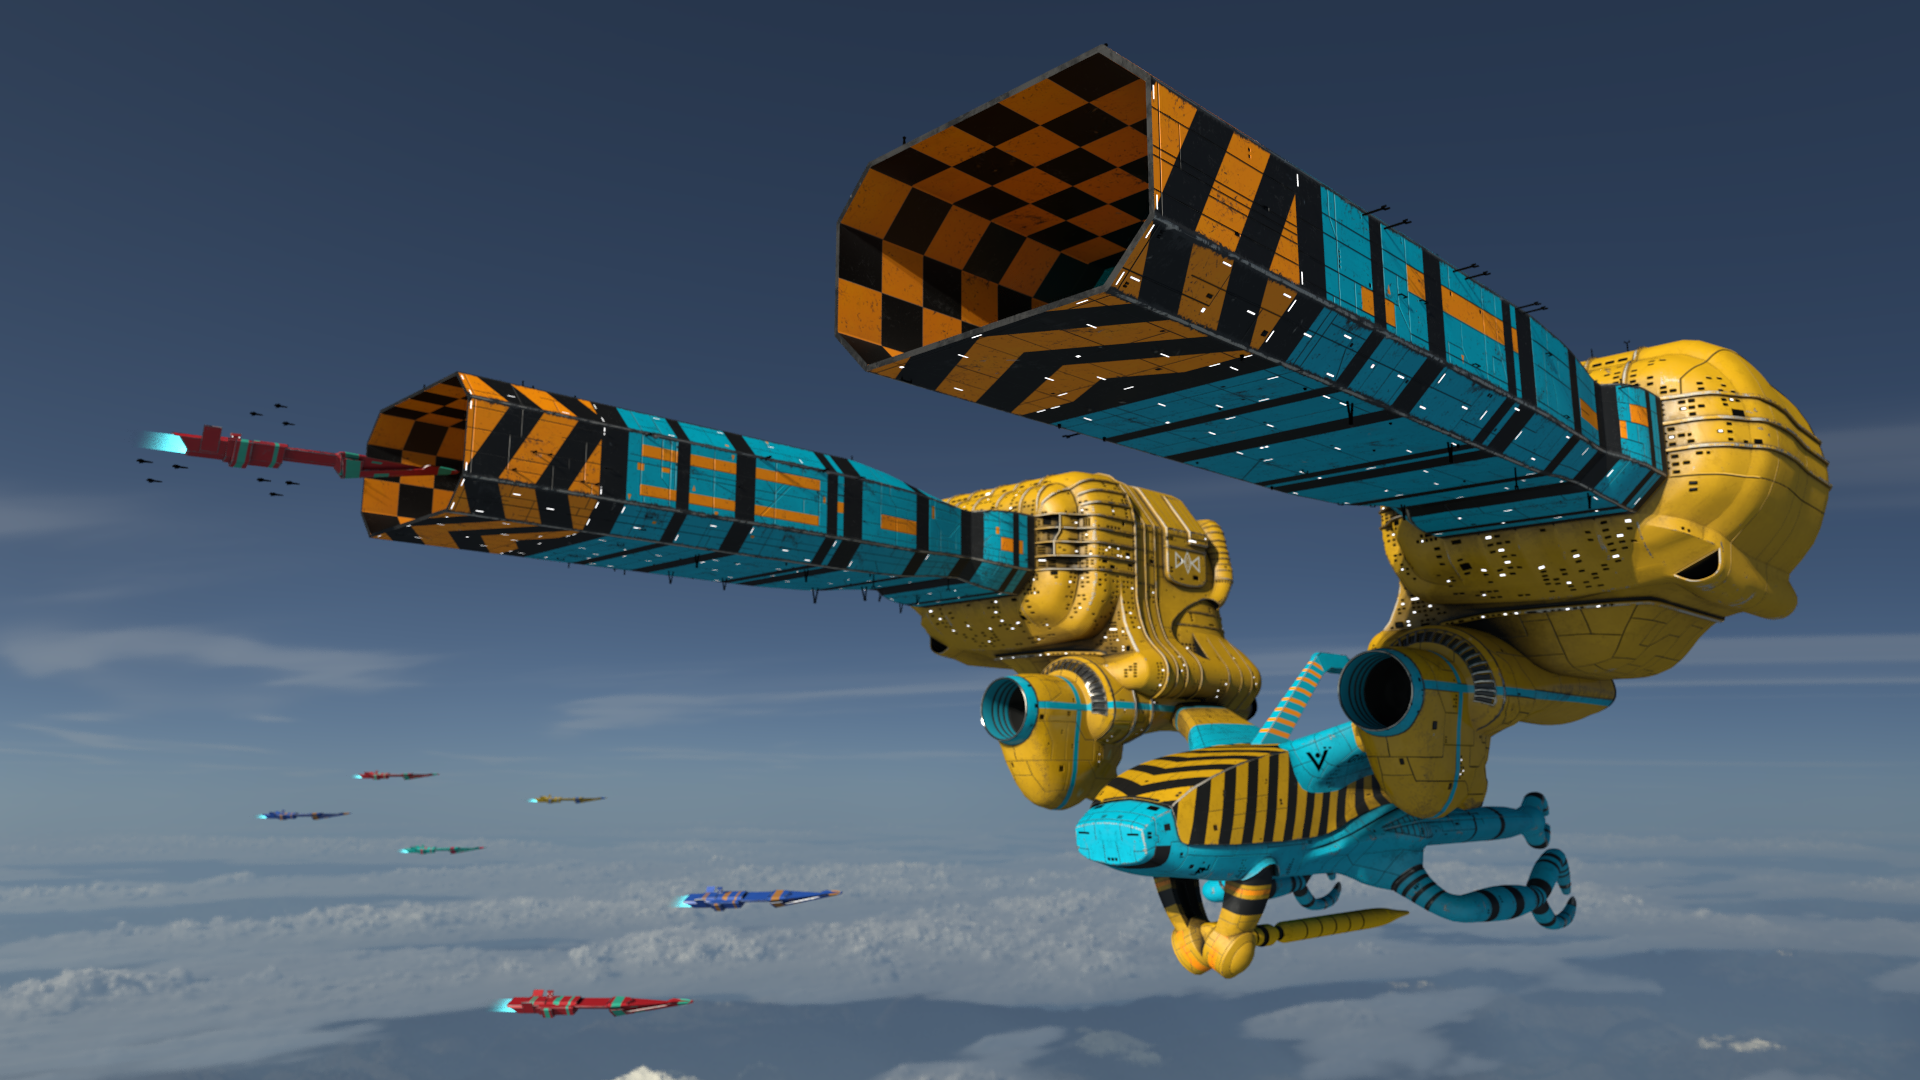 Guild Tug  - based on a ship design by Chris Foss   Tools:  Maya, Substance Painter, Photoshop, Renderman  Production Time:  2 weeks